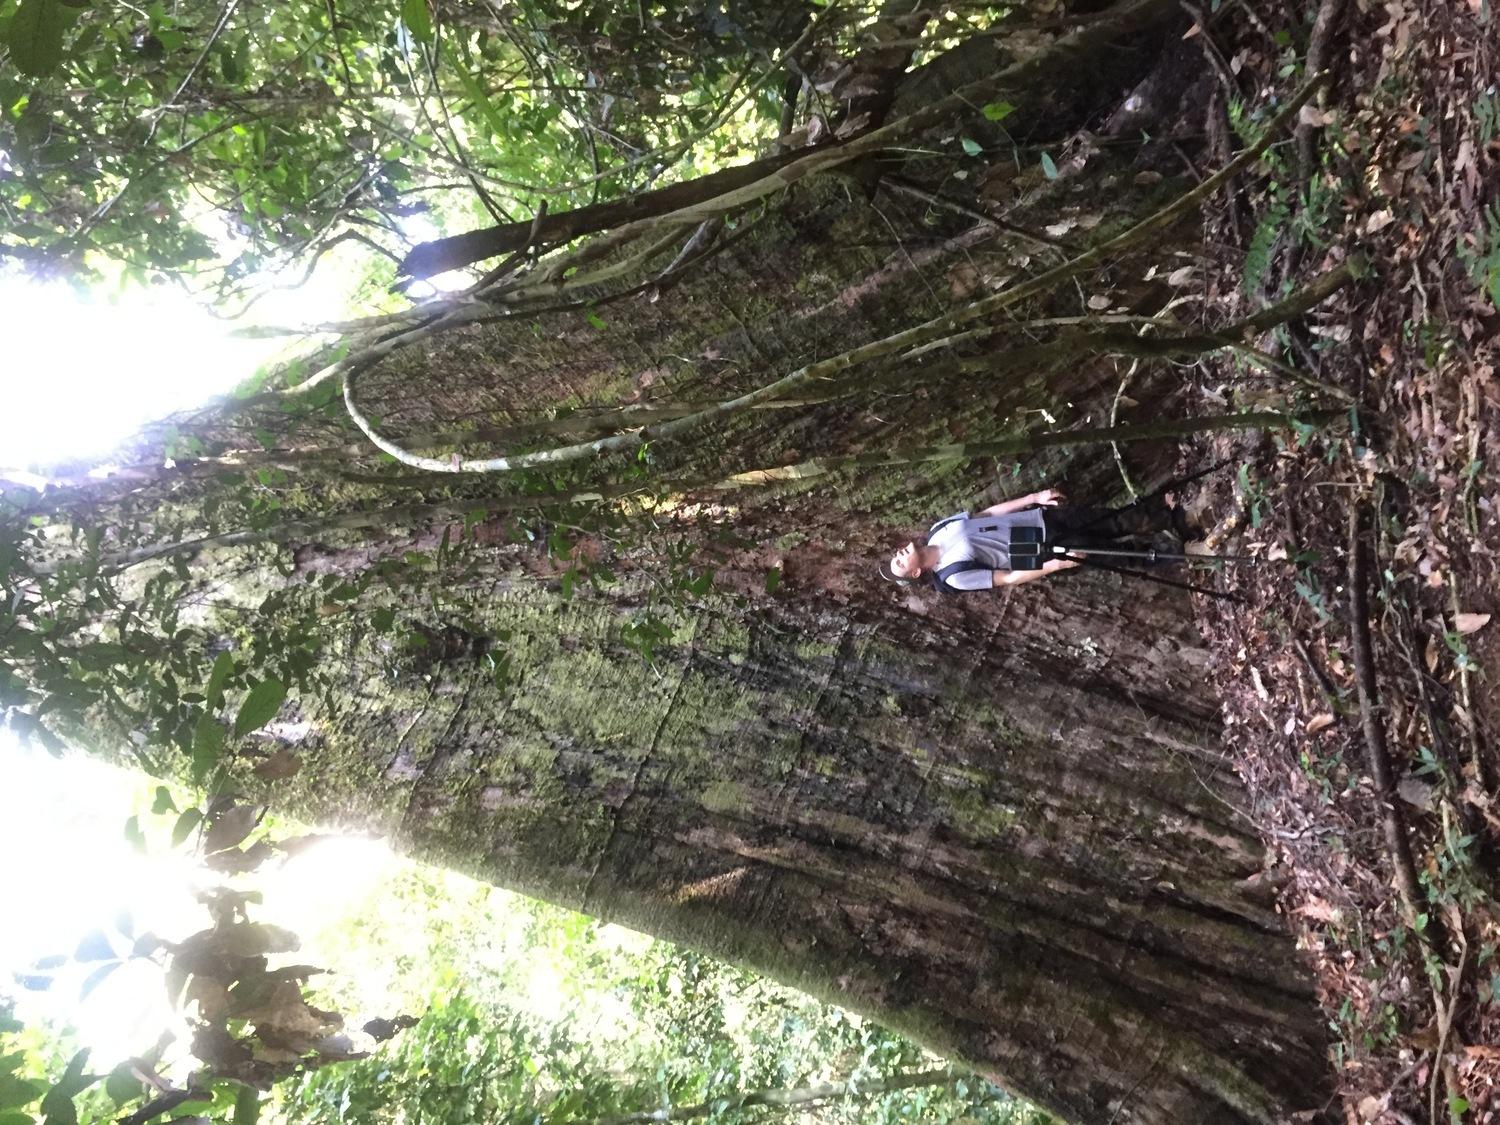 Dr Martin Ehbrecht studied the tropical rainforest in Borneo, in addition to many other areas.